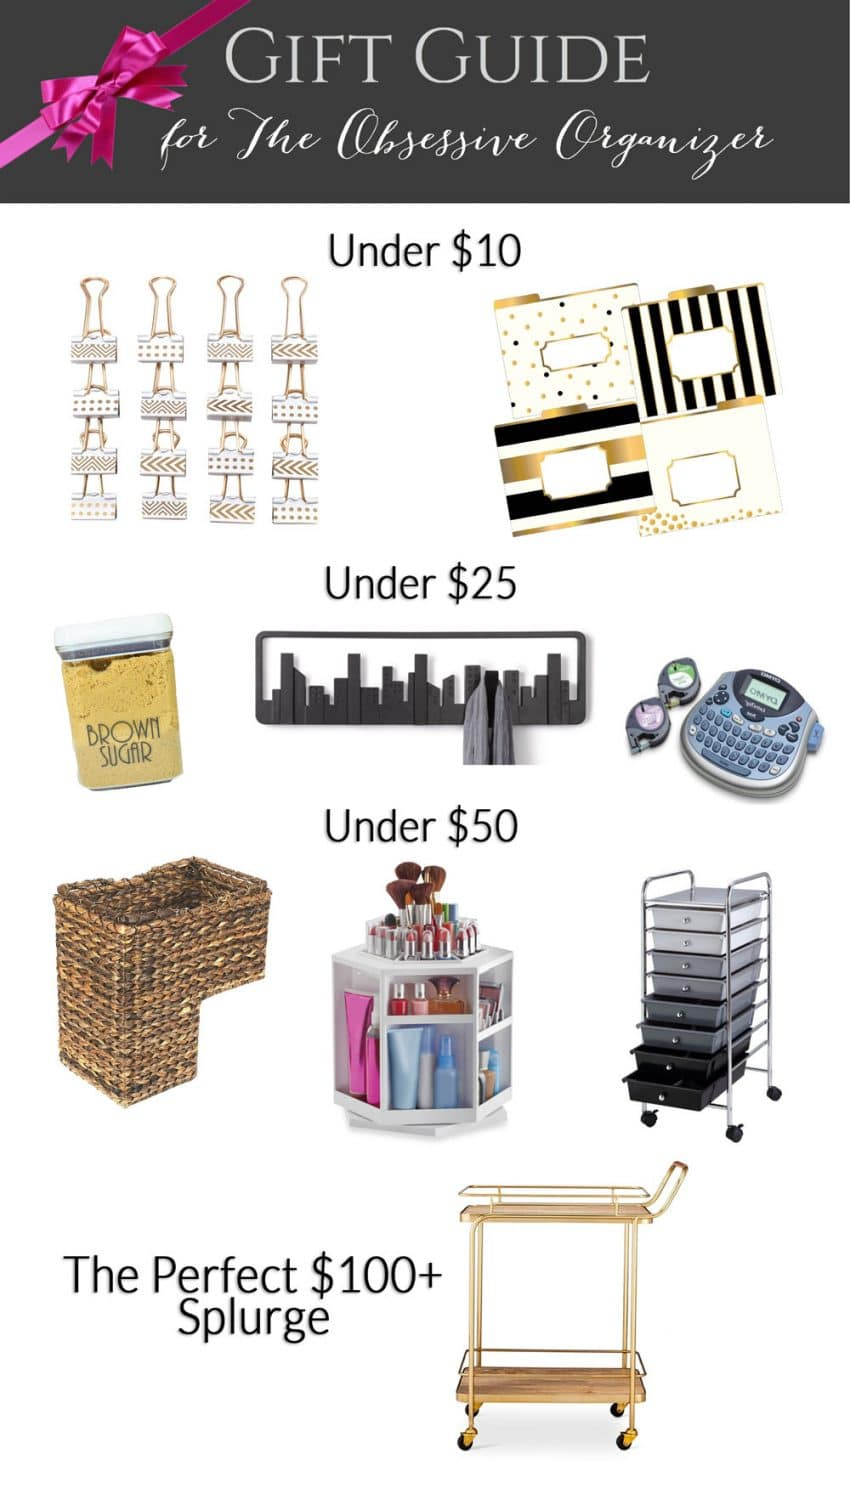 Organizing Gift Guide by Polished Habitat - Options for every budget including under $10, $25, & $50